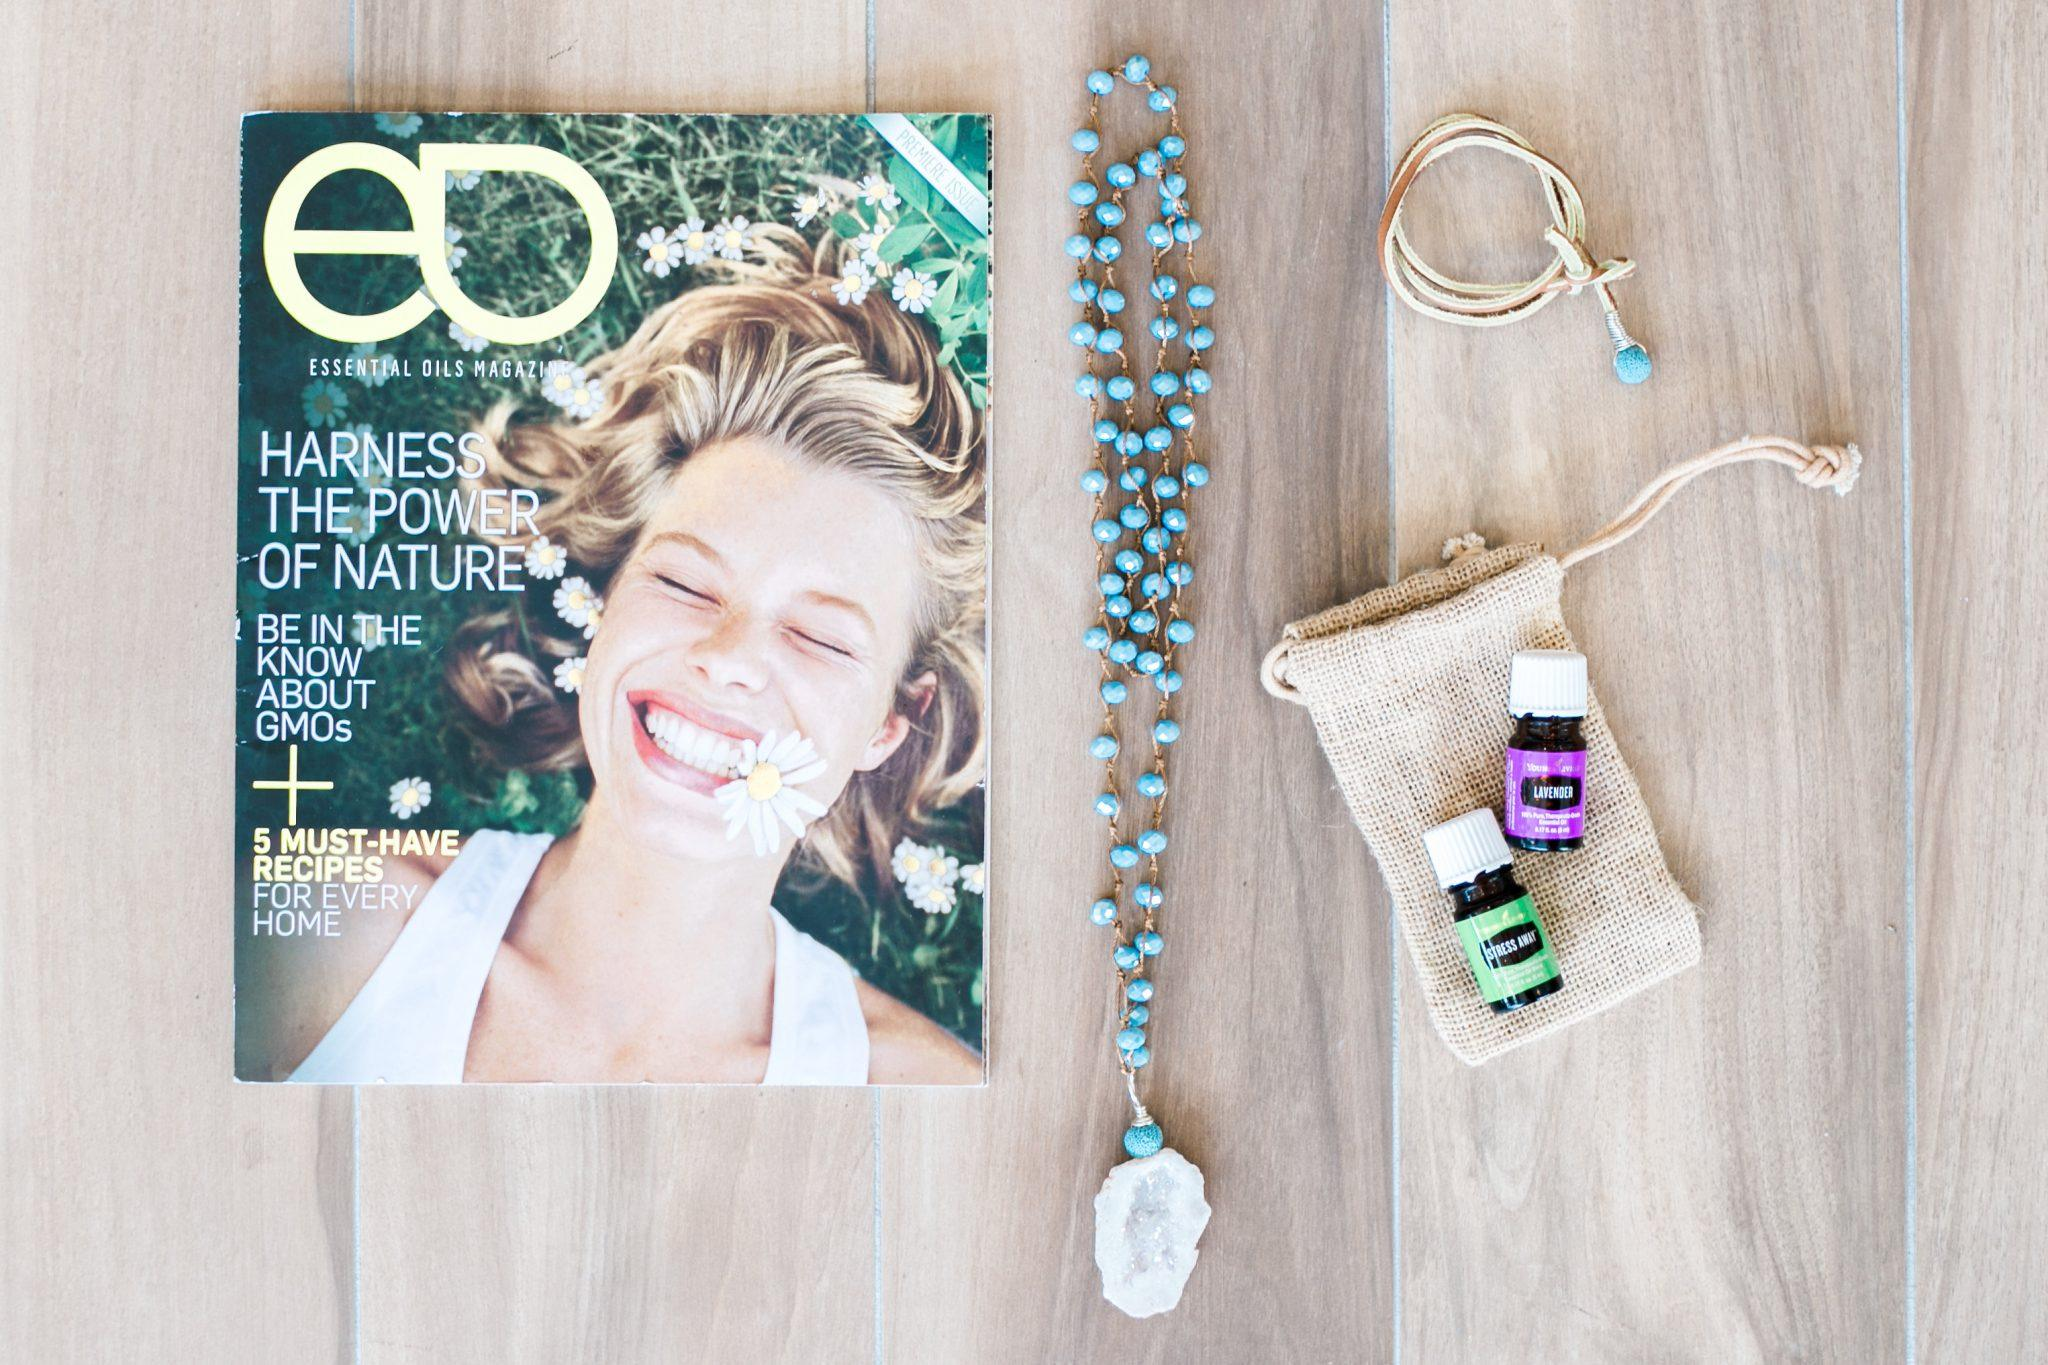 Essential Oils magazine and my favorite oils and diffuser jewelry by @nomadicnewlyweds